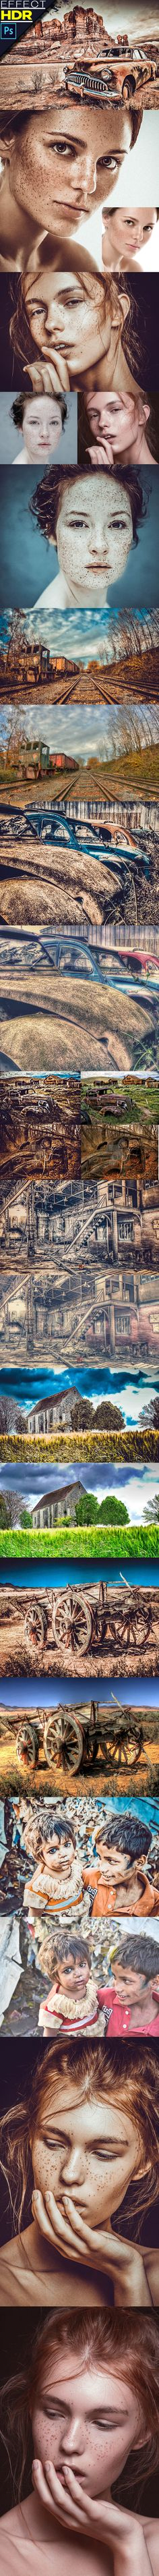 HDR Effect Photoshop Action - Photo Effects Actions add-ons,artistic,black and white,cartoon,comic,drawing effects,hand drawing,hdr,image,image effect,image sketch,lightroom,pencil effect,photo,photo effect,photoshop action,pixel,potoshop